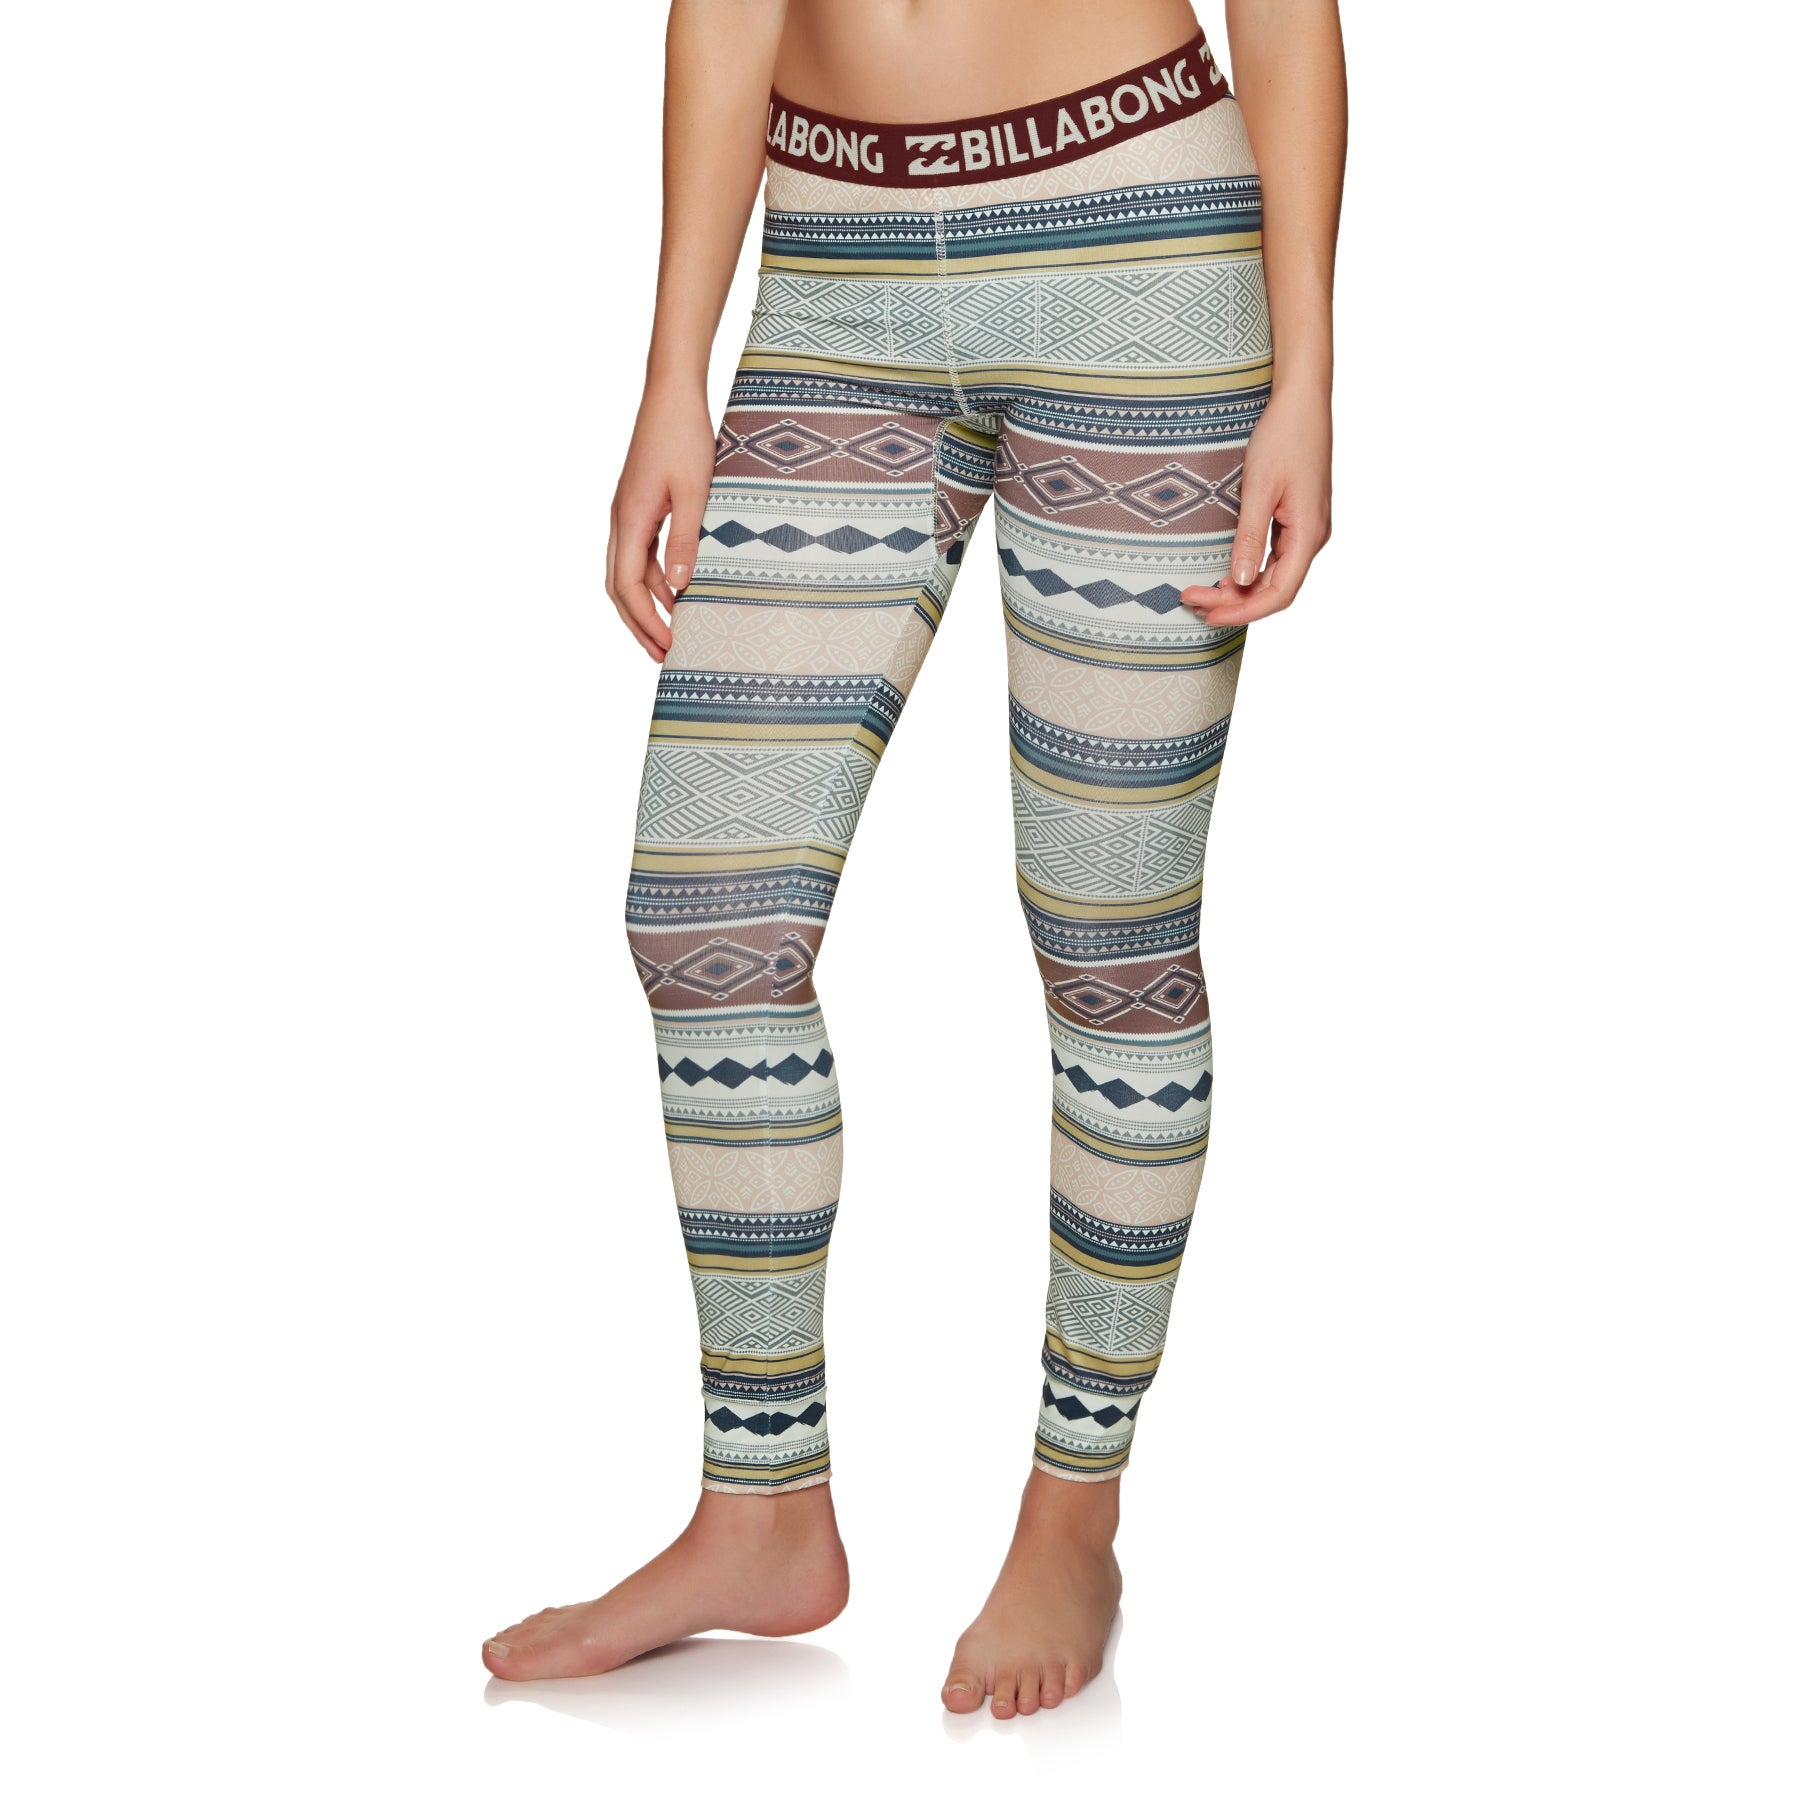 Billabong Warm Up Tech Womens Base Layer Leggings - Aztec